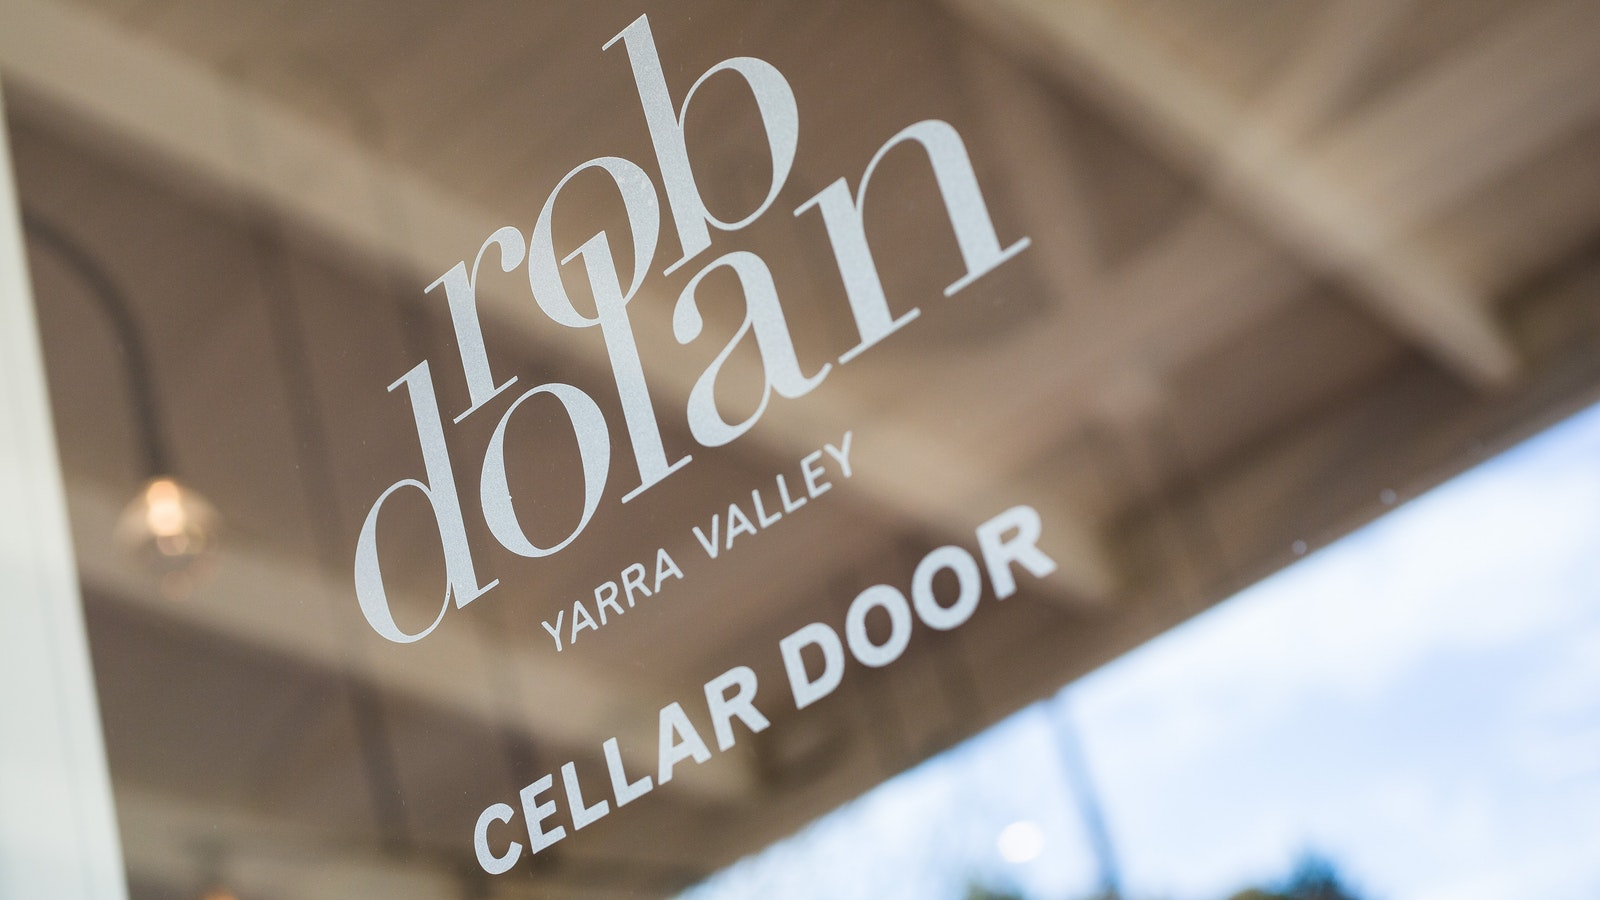 Rob Dolan Cellar Door Entry